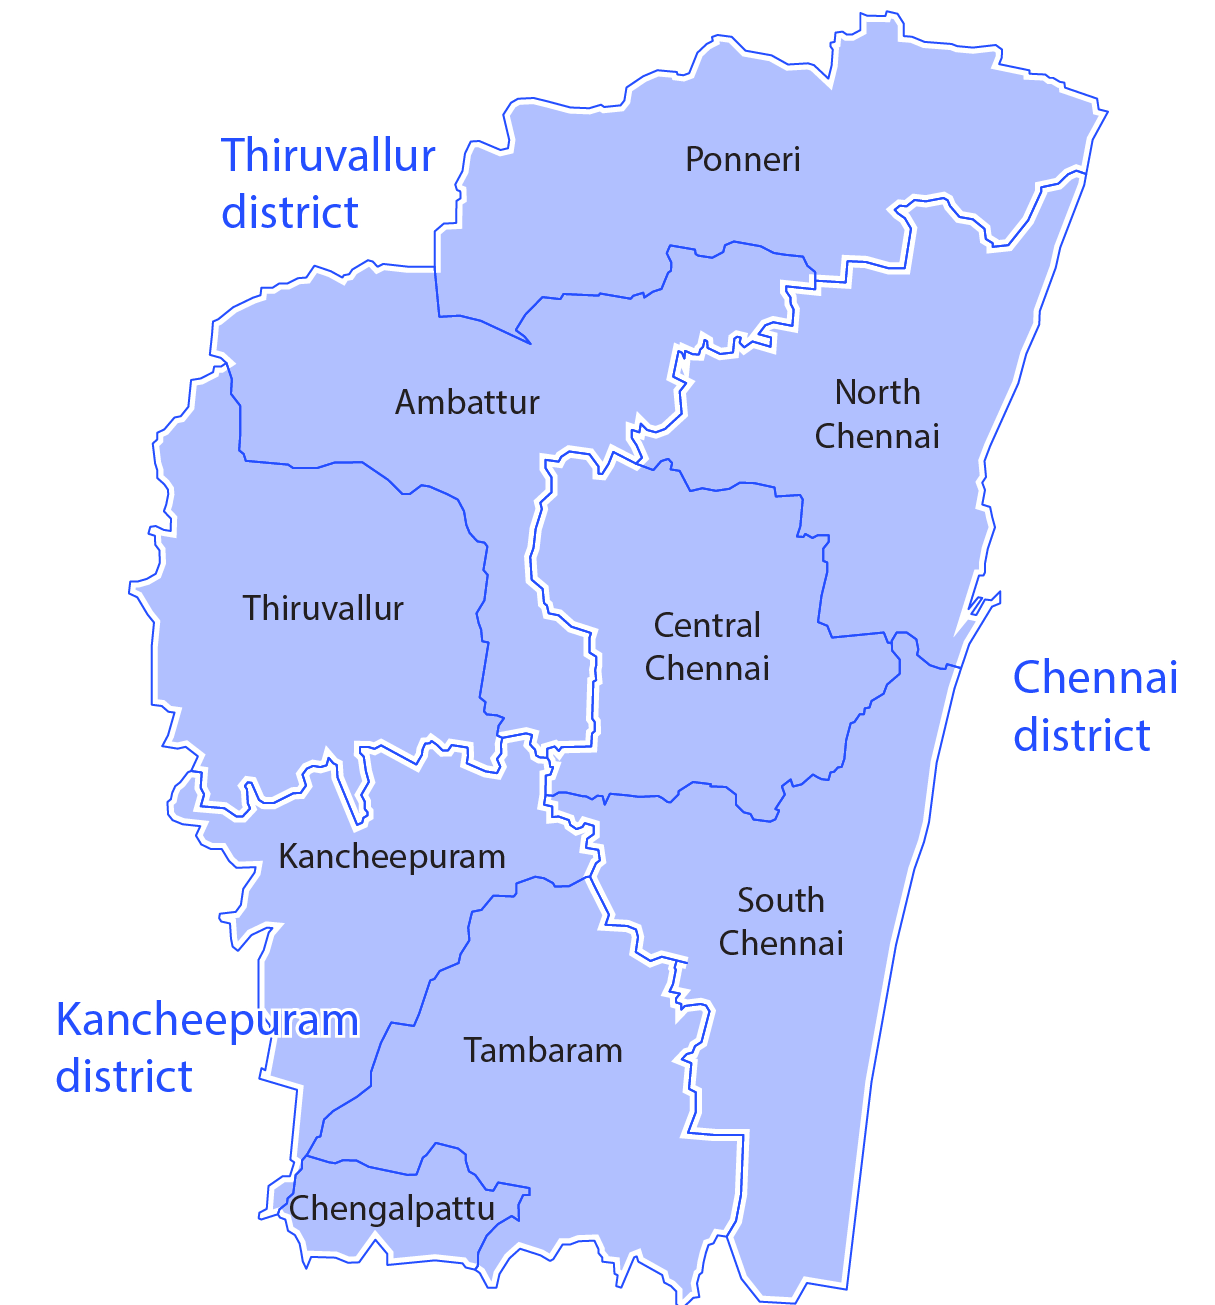 Speculation on Property in Chennai: Location Medavakkam